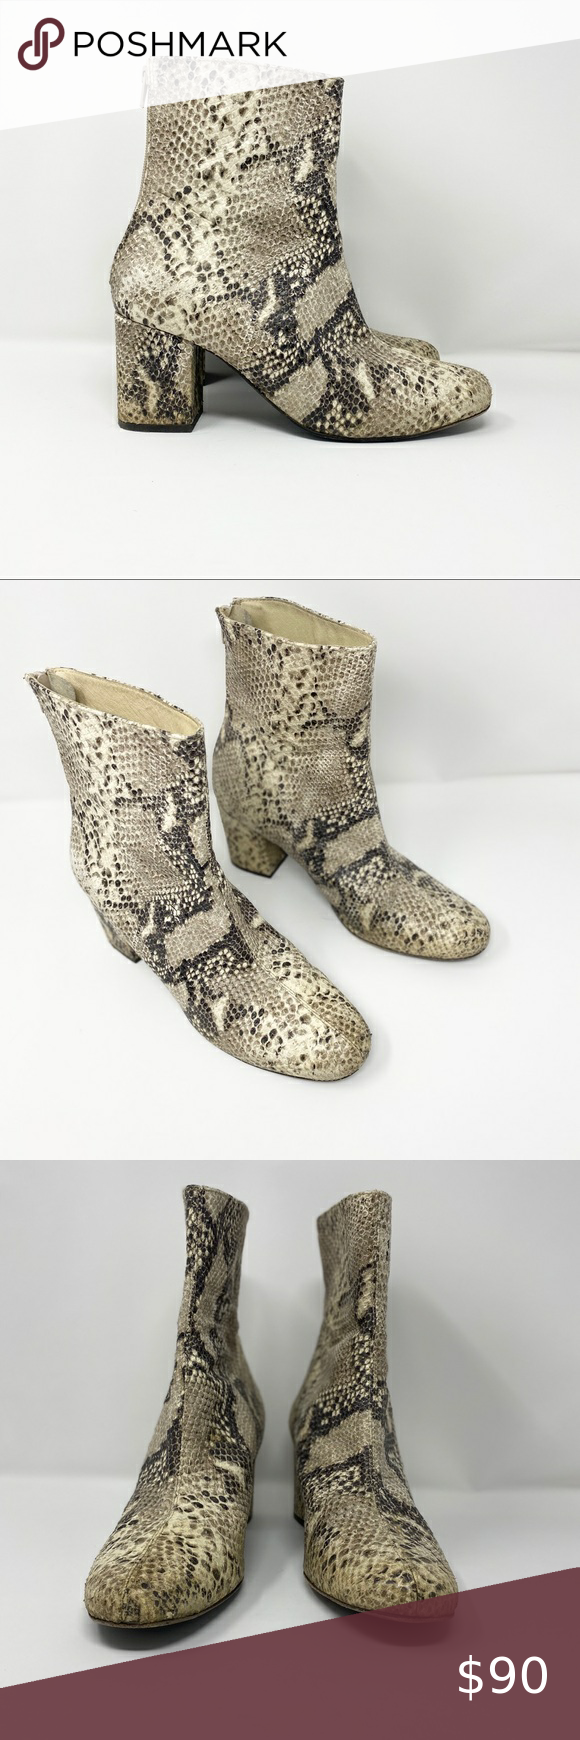 Free people snake print boots size 11 Free people snake print boots size 11 Free…